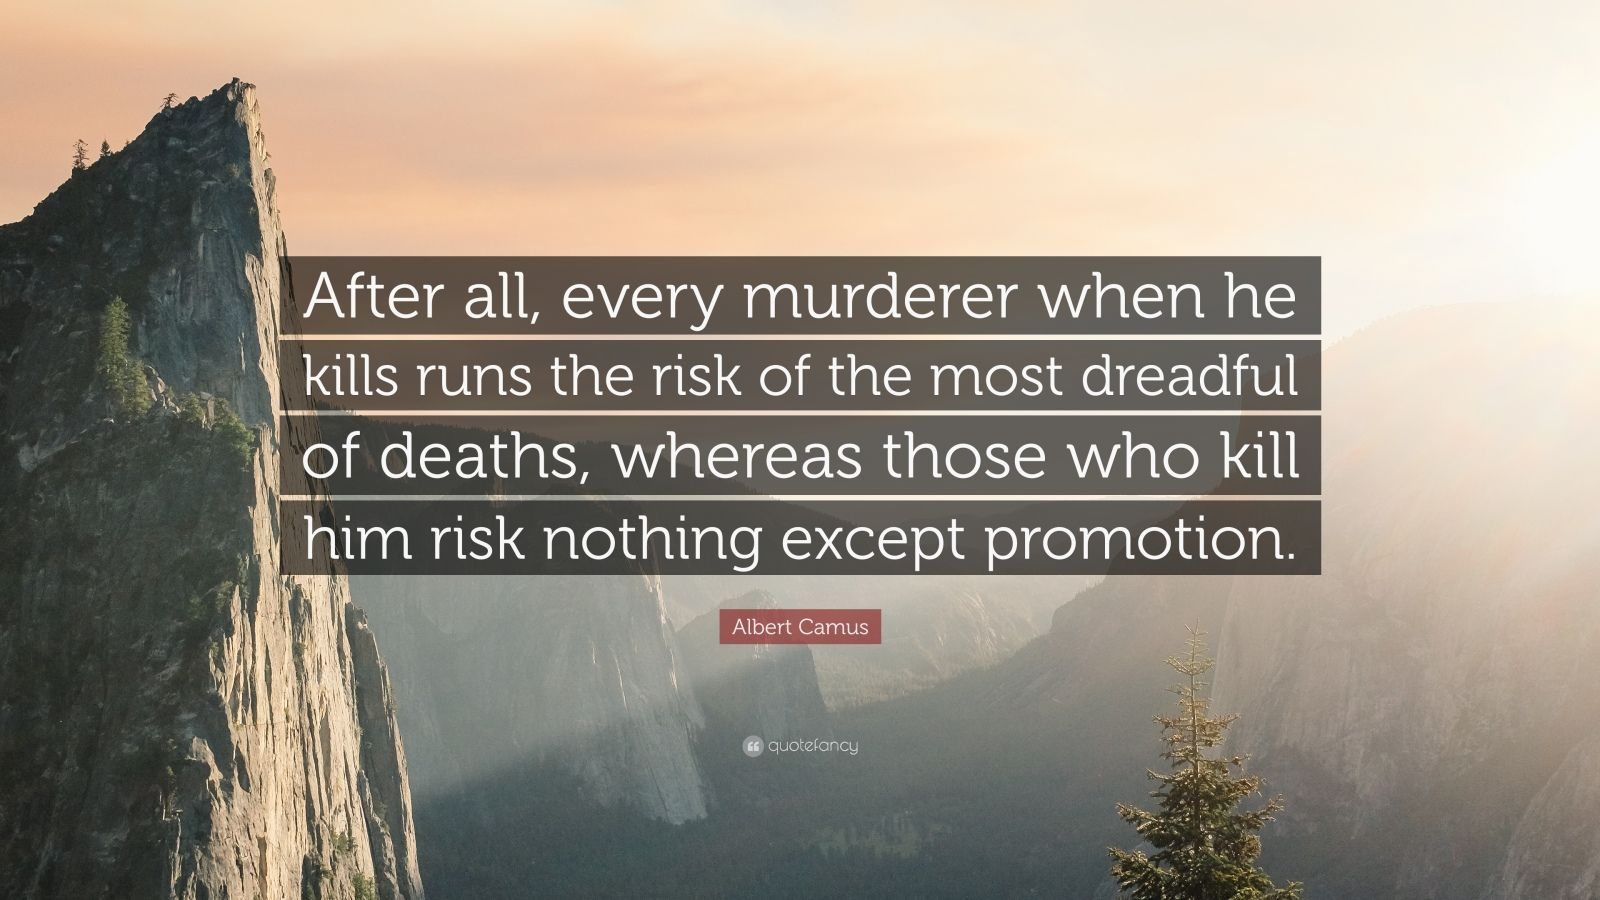 """Albert Camus Quote: """"After all, every murderer when he kills runs the risk of the most dreadful of deaths, whereas those who kill him risk nothing except promotion."""""""